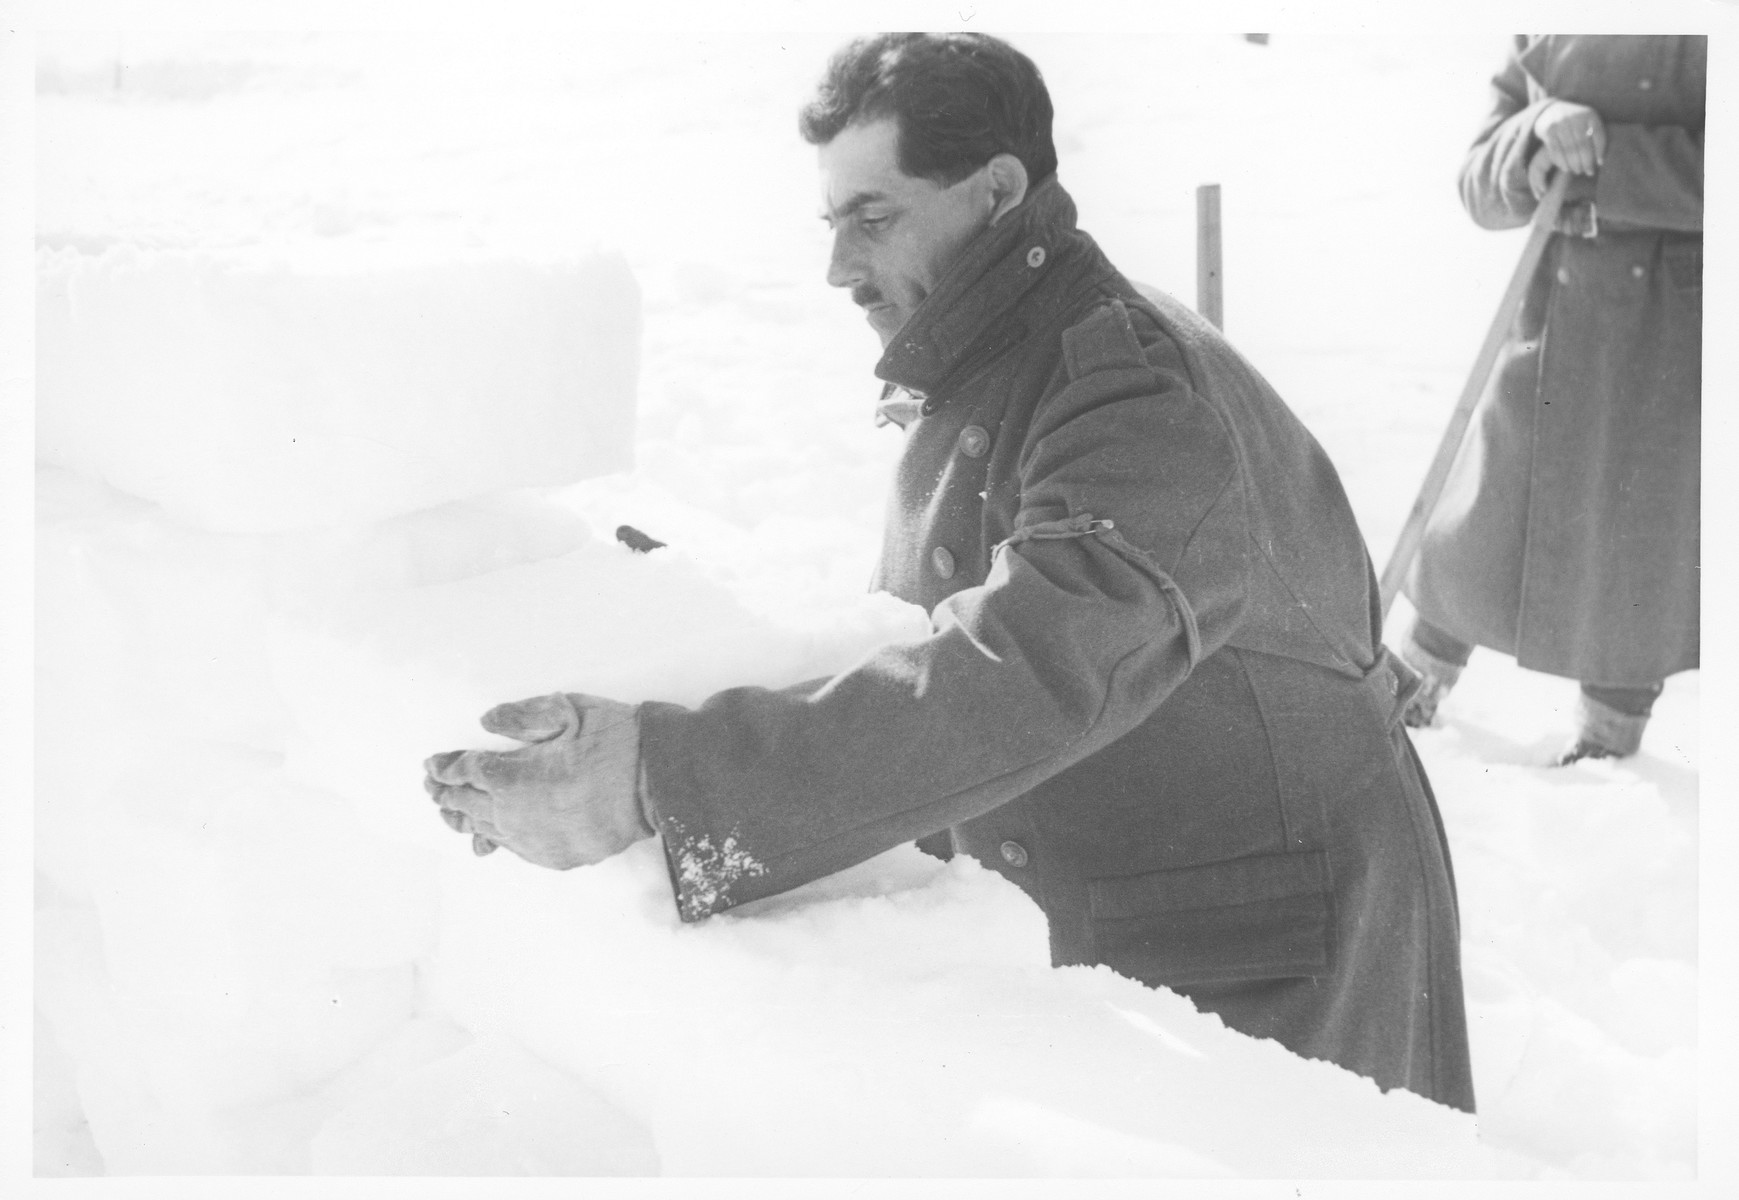 A Jewish conscript in Company 108/57 of the Hungarian Labor Service at forced labor clearing snow from a road.